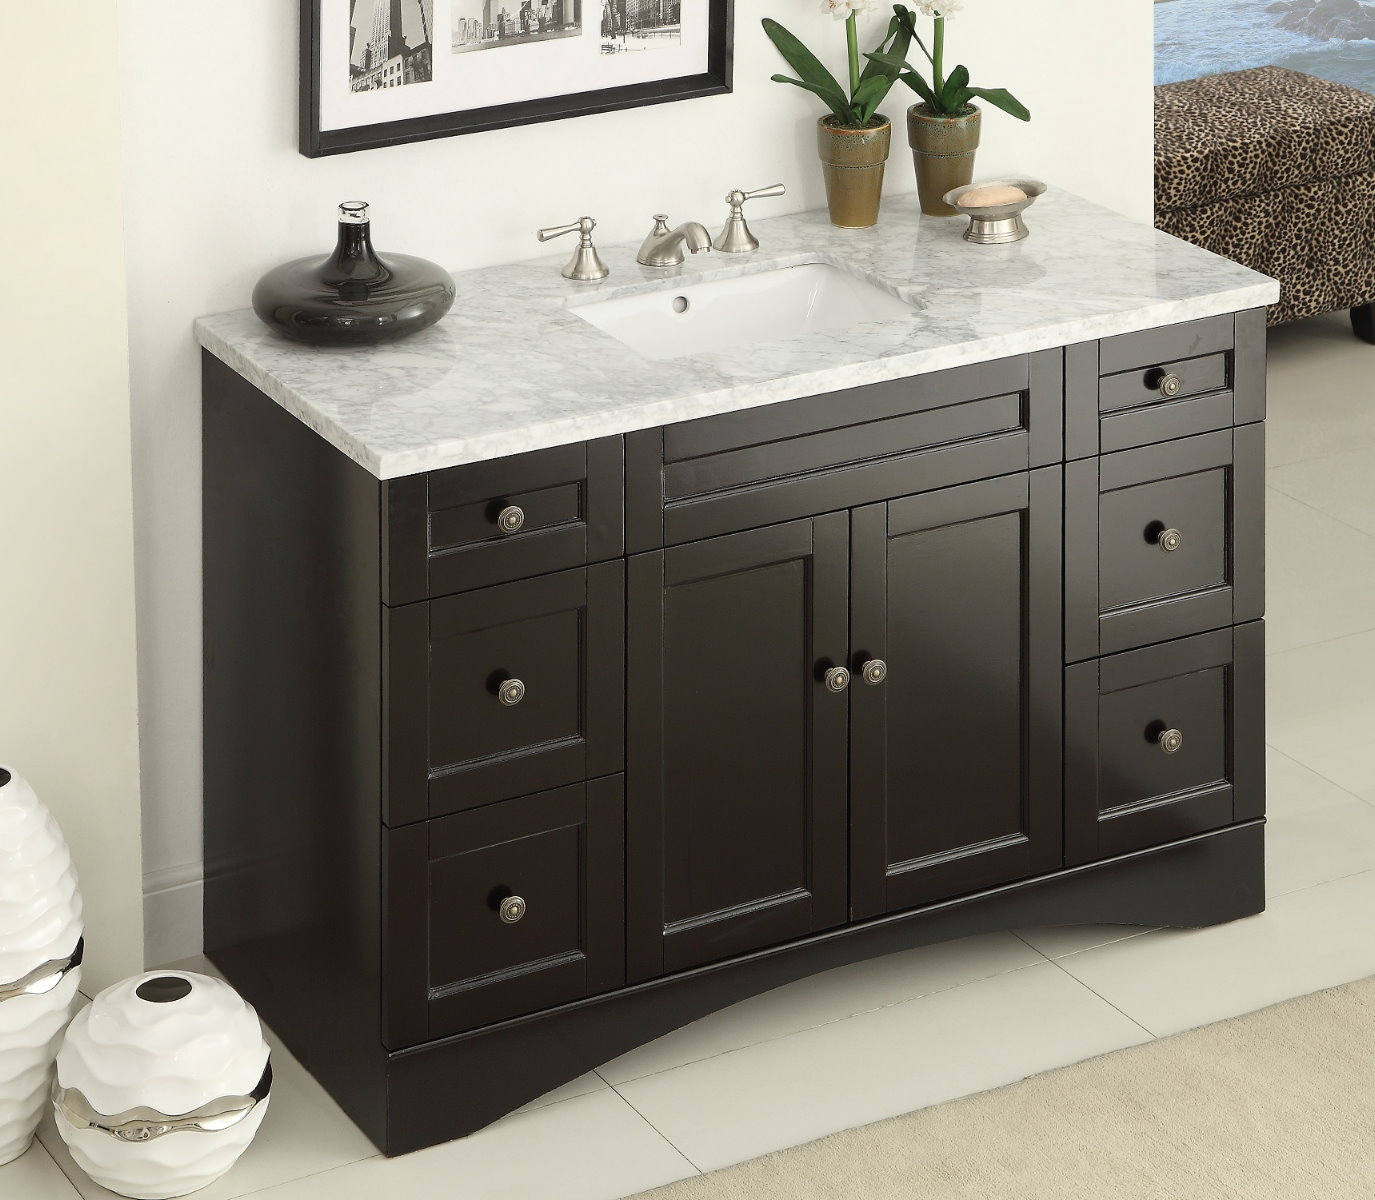 Marble Vanity Countertops Granite Countertops Travertine Countertops